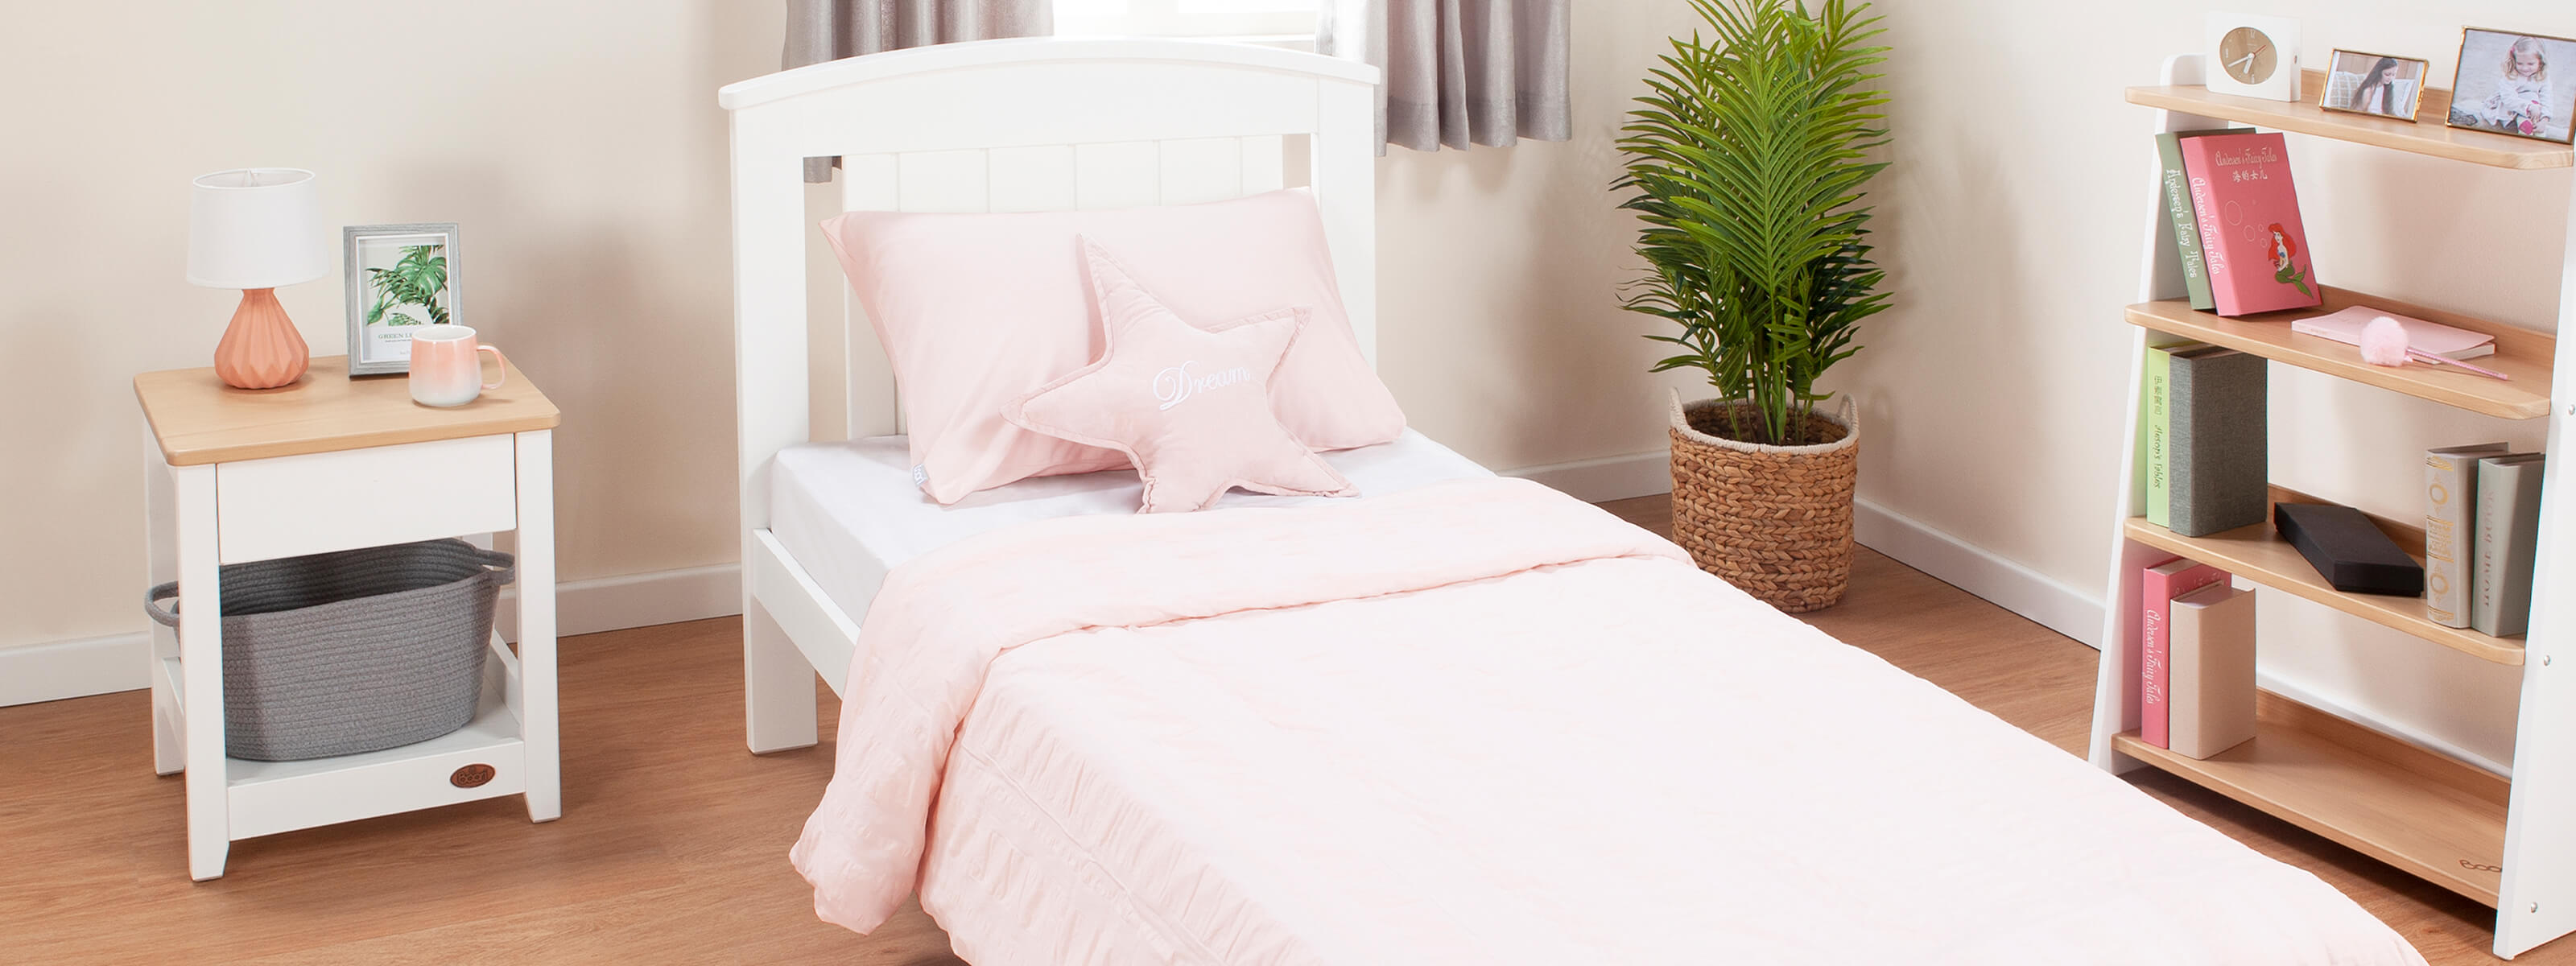 Product_Page_Lifestyles_1600_x_600_Casa_single_Bed_White_FORWEB__2